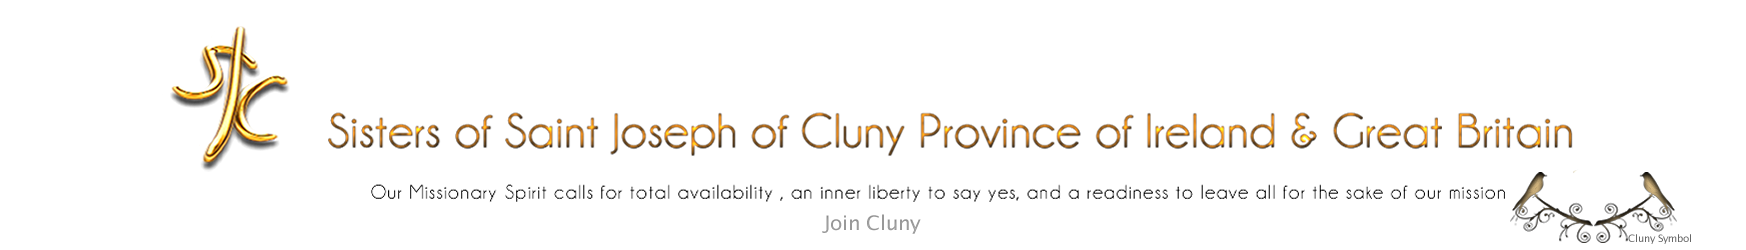 join cluny